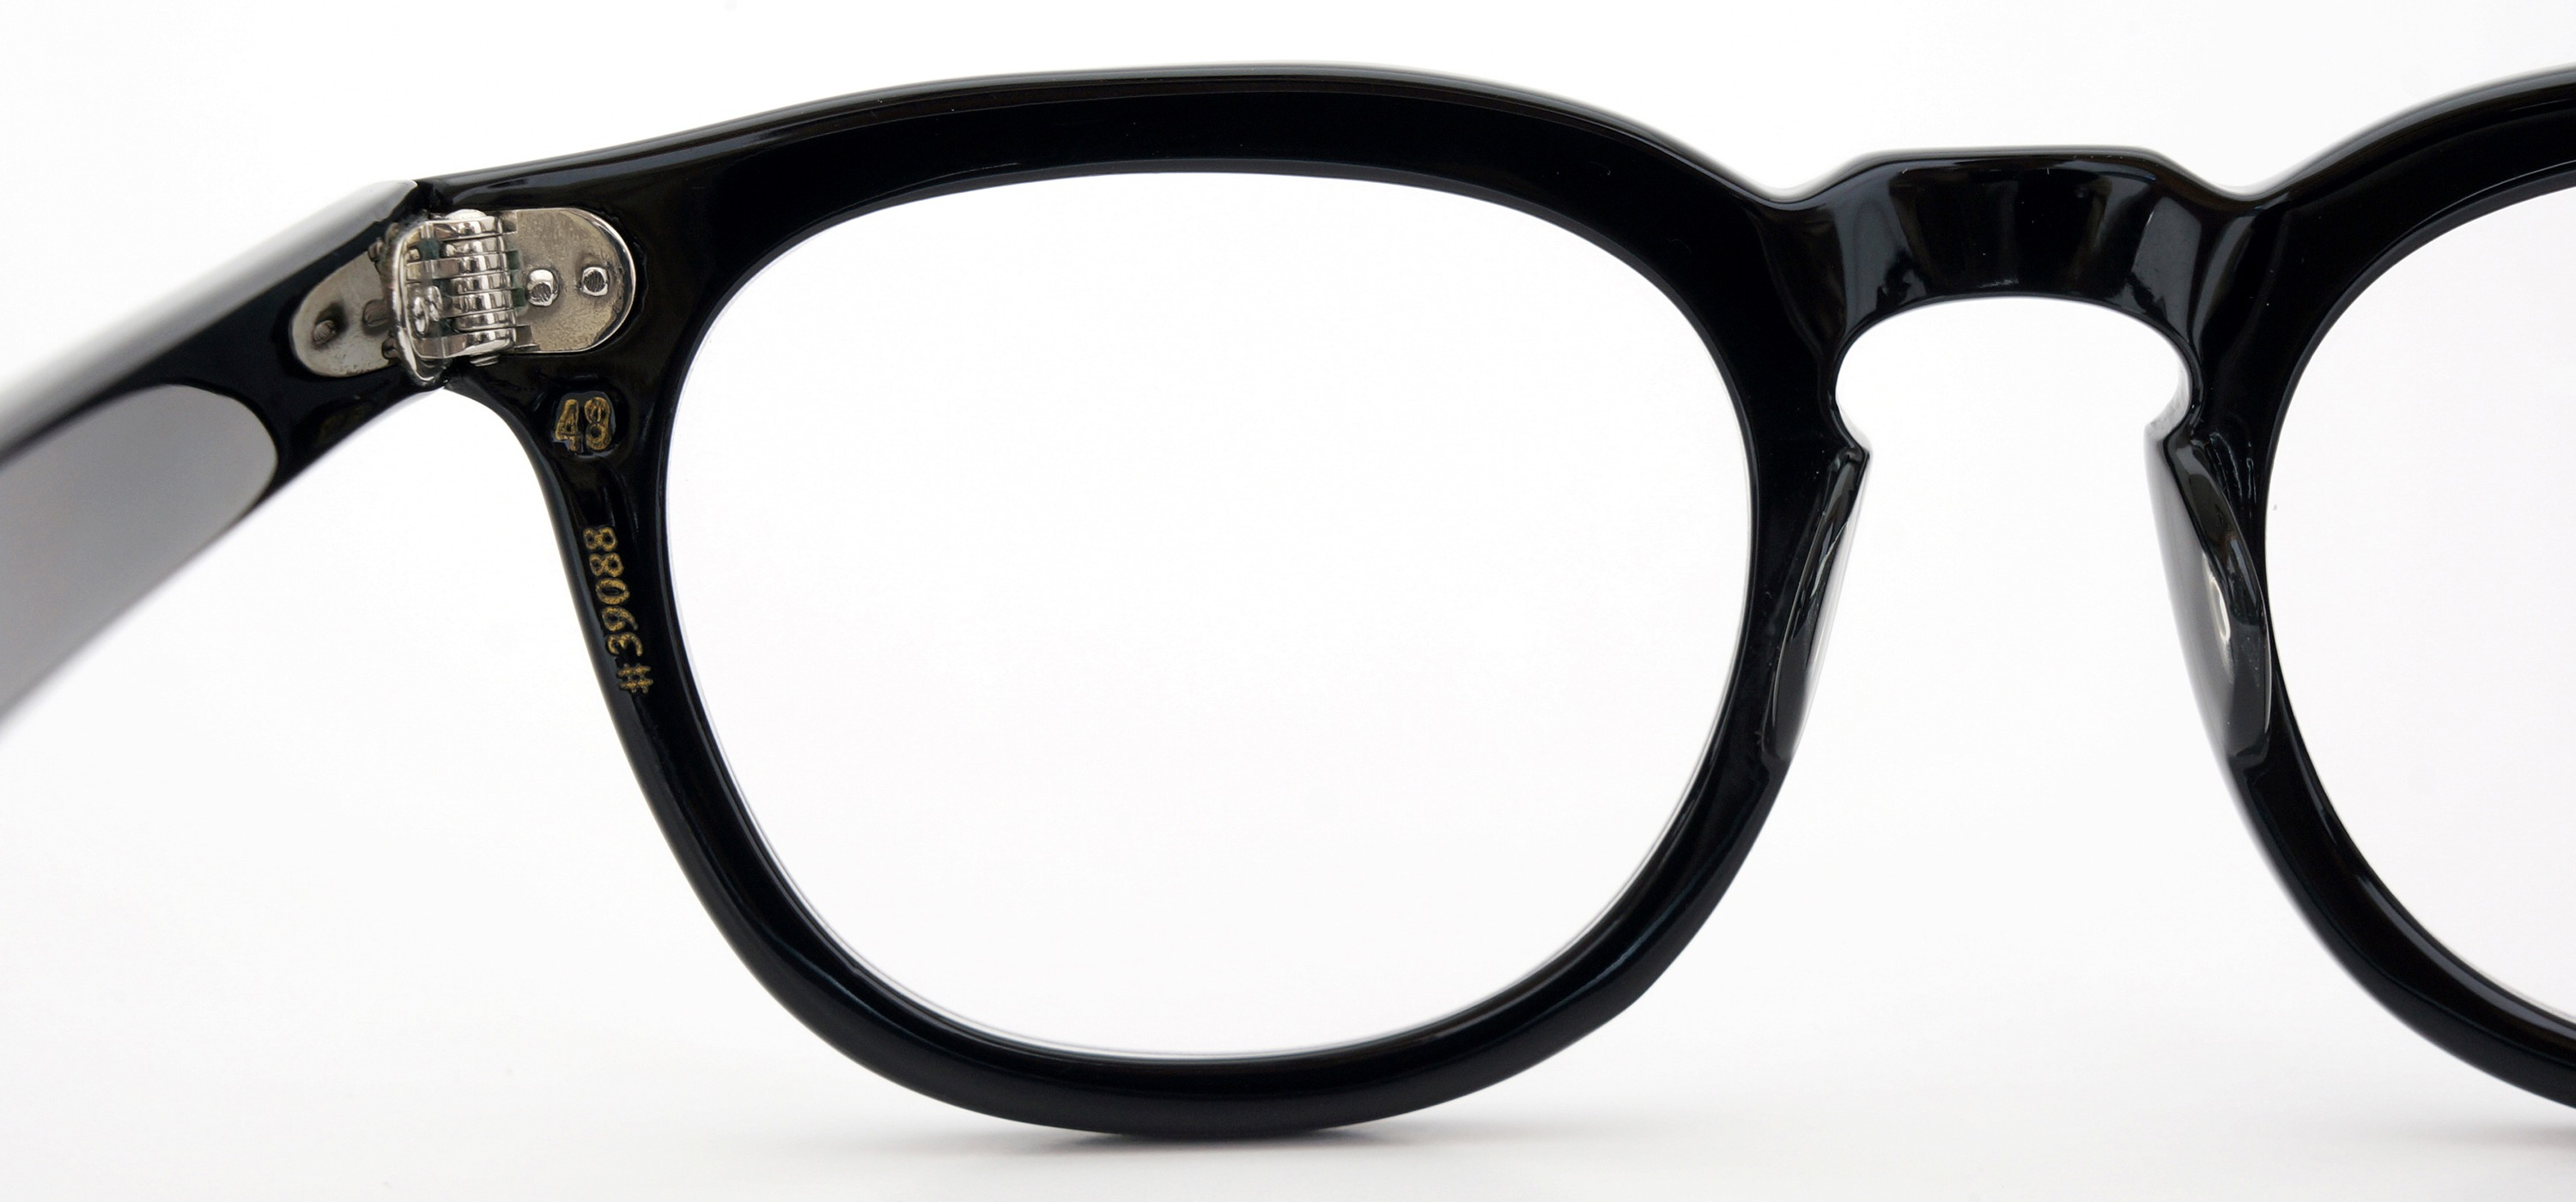 The Spectacle メガネ 1950s-70s TART OPTICAL ARNEL(FRAME USA) BLACK 48-22 イメージ12